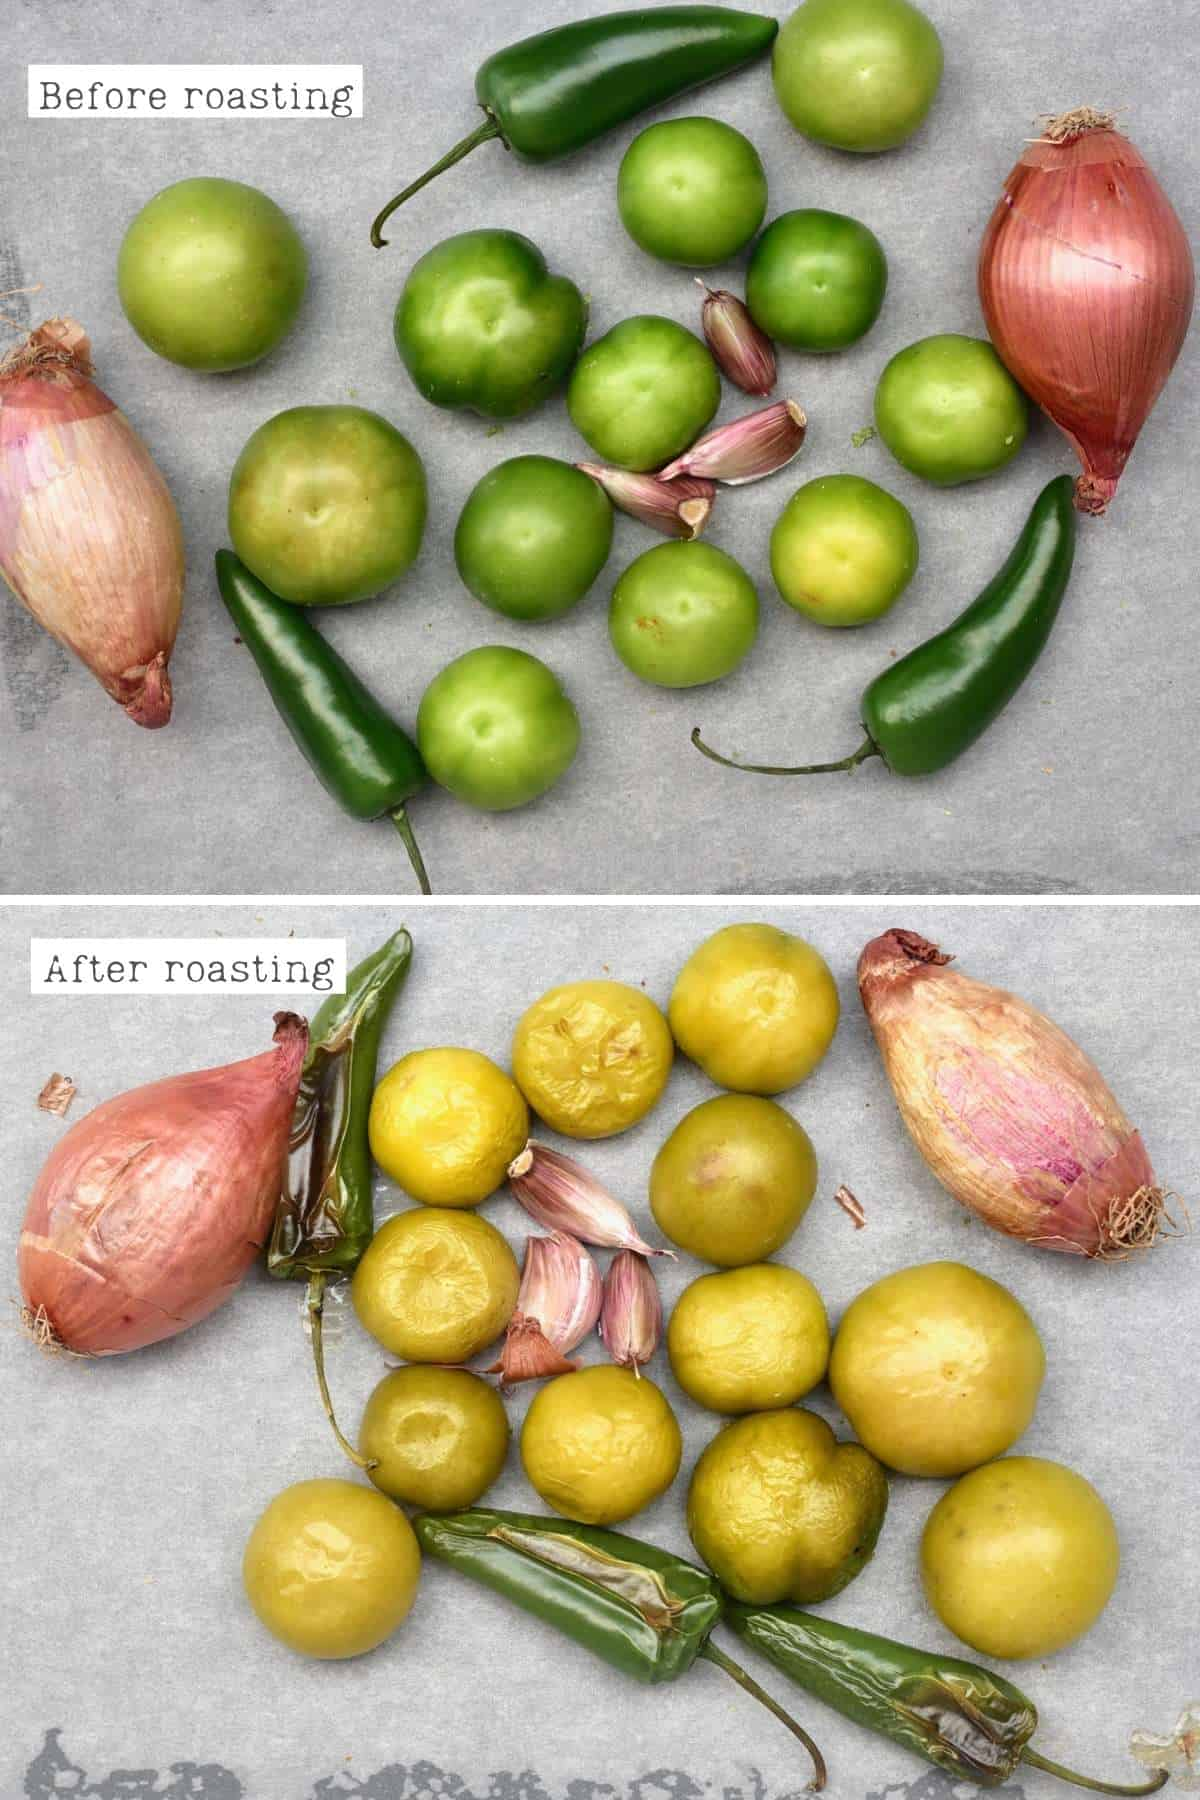 Before and after roasting the ingredients for salsa verde